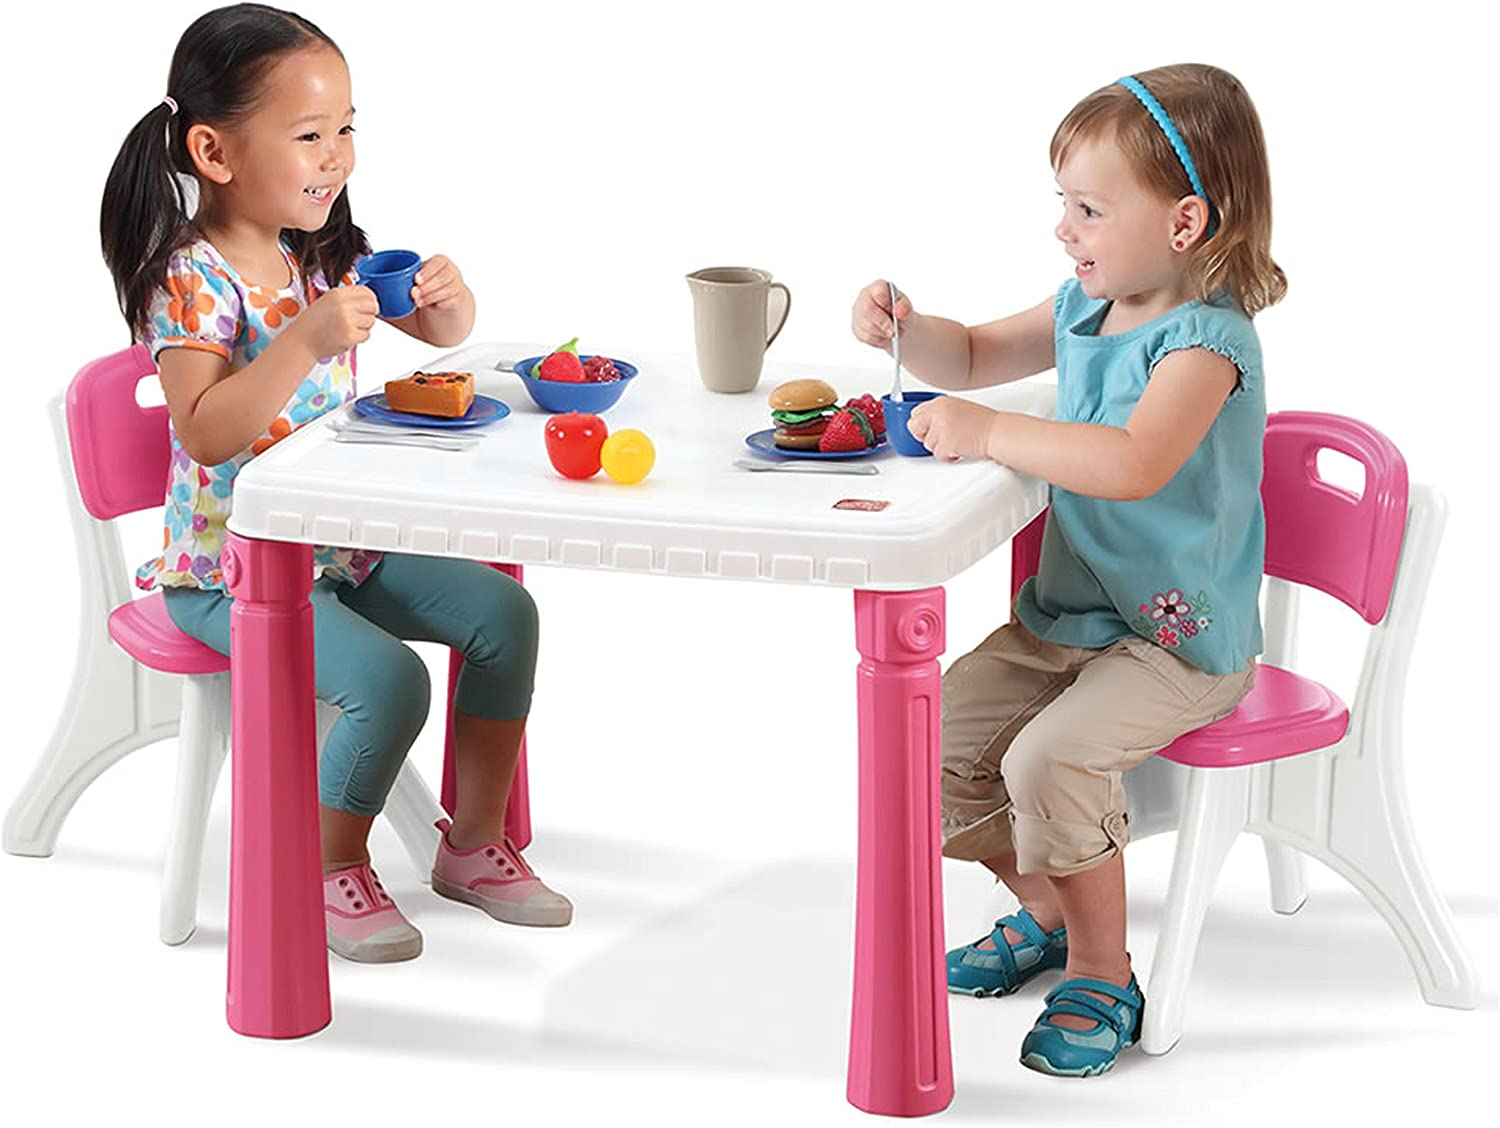 Step9 LifeStyle Kitchen Table and Chairs Set, Pink   9